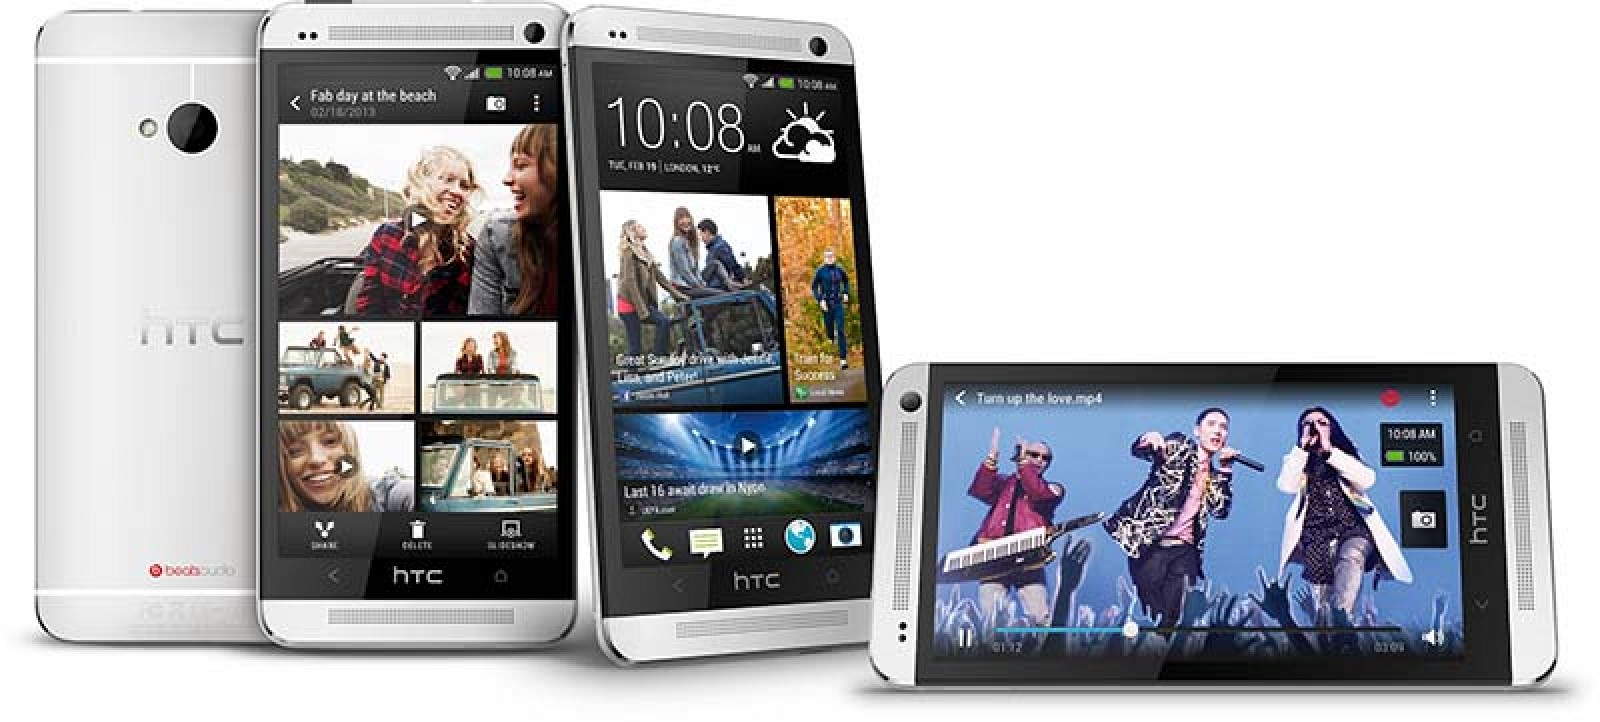 The head of HTC: Apple copies NAS review